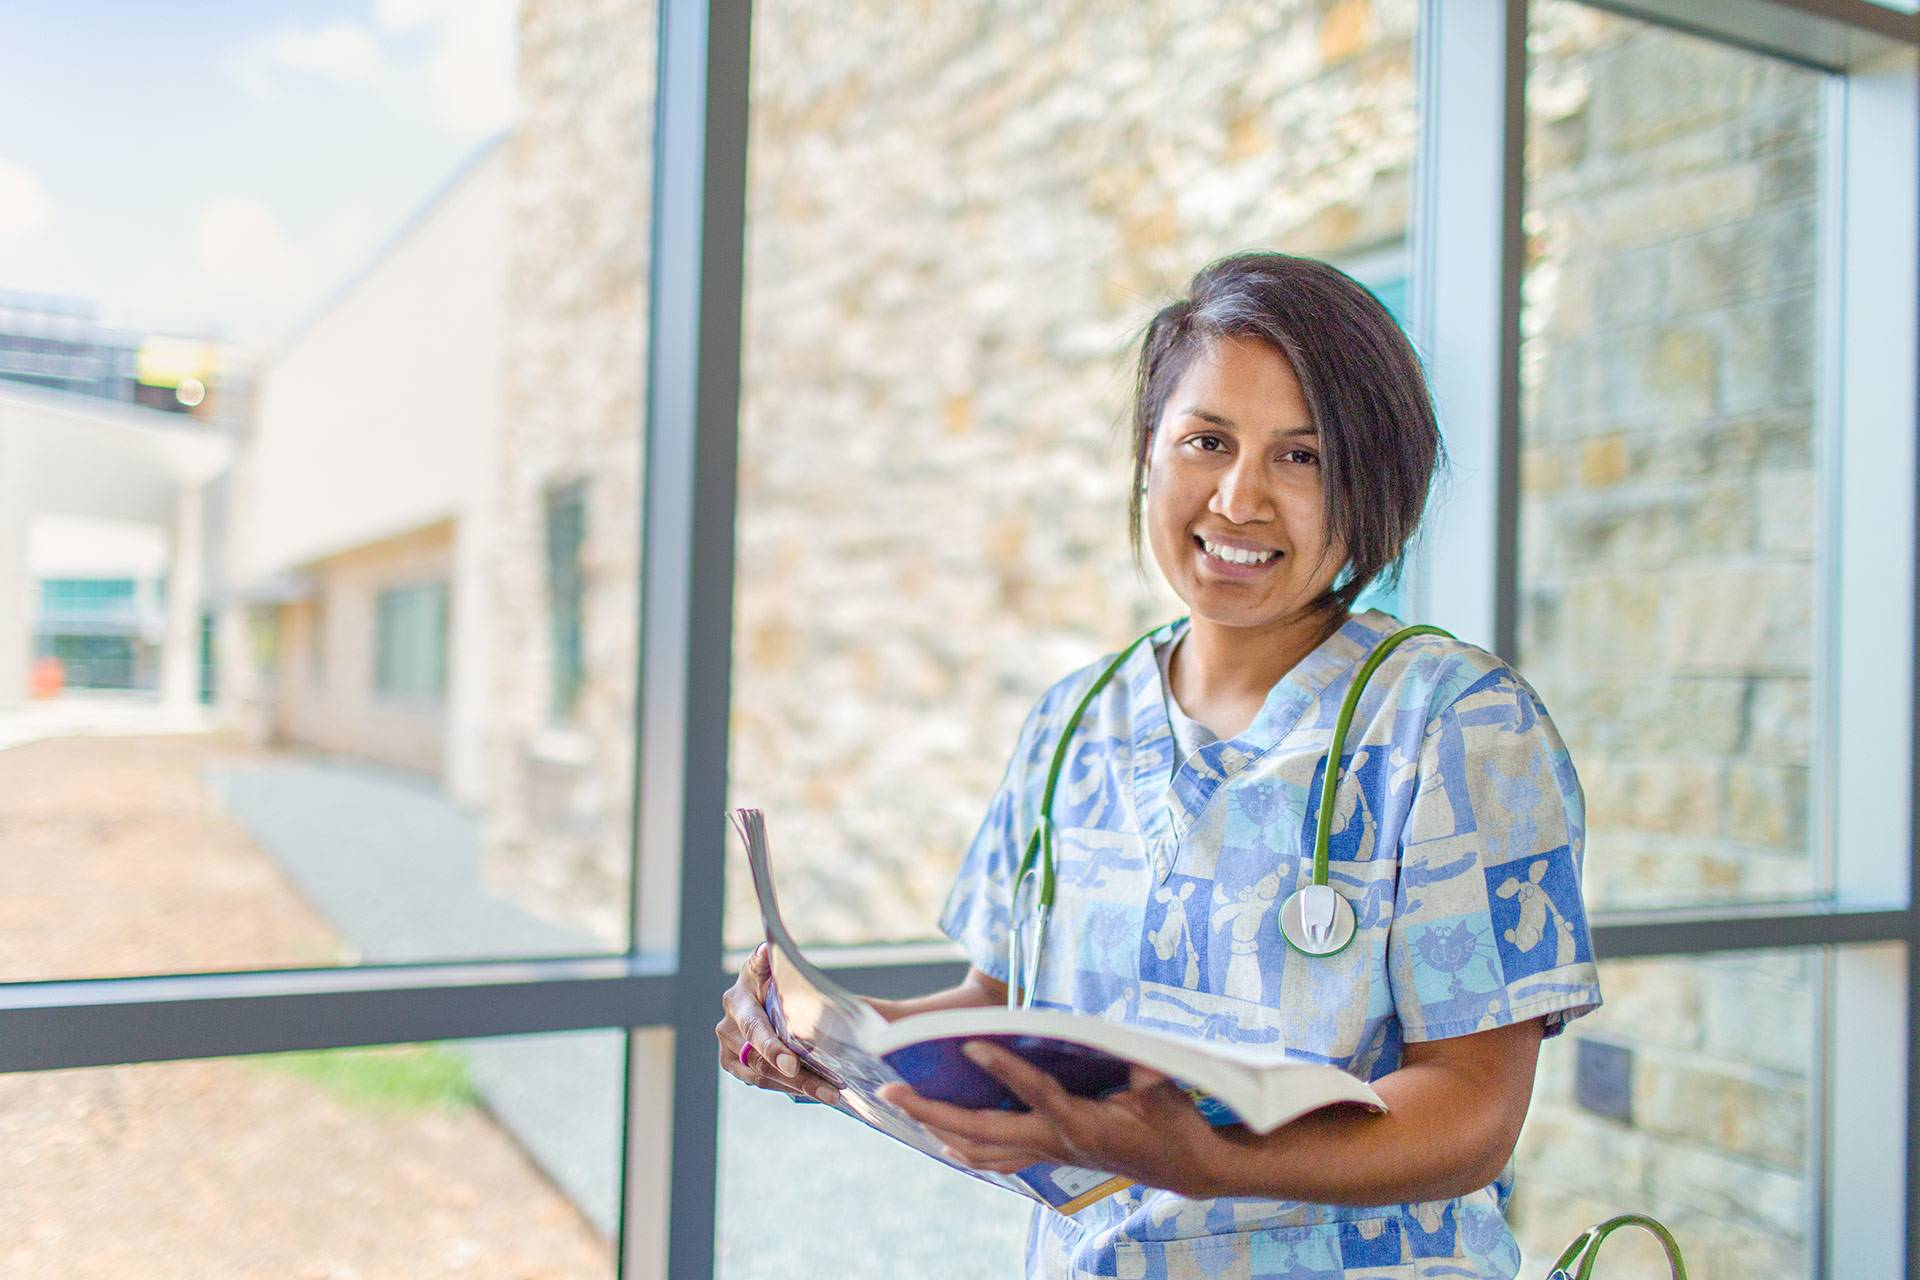 Learn how to boost your nursing career at free conference